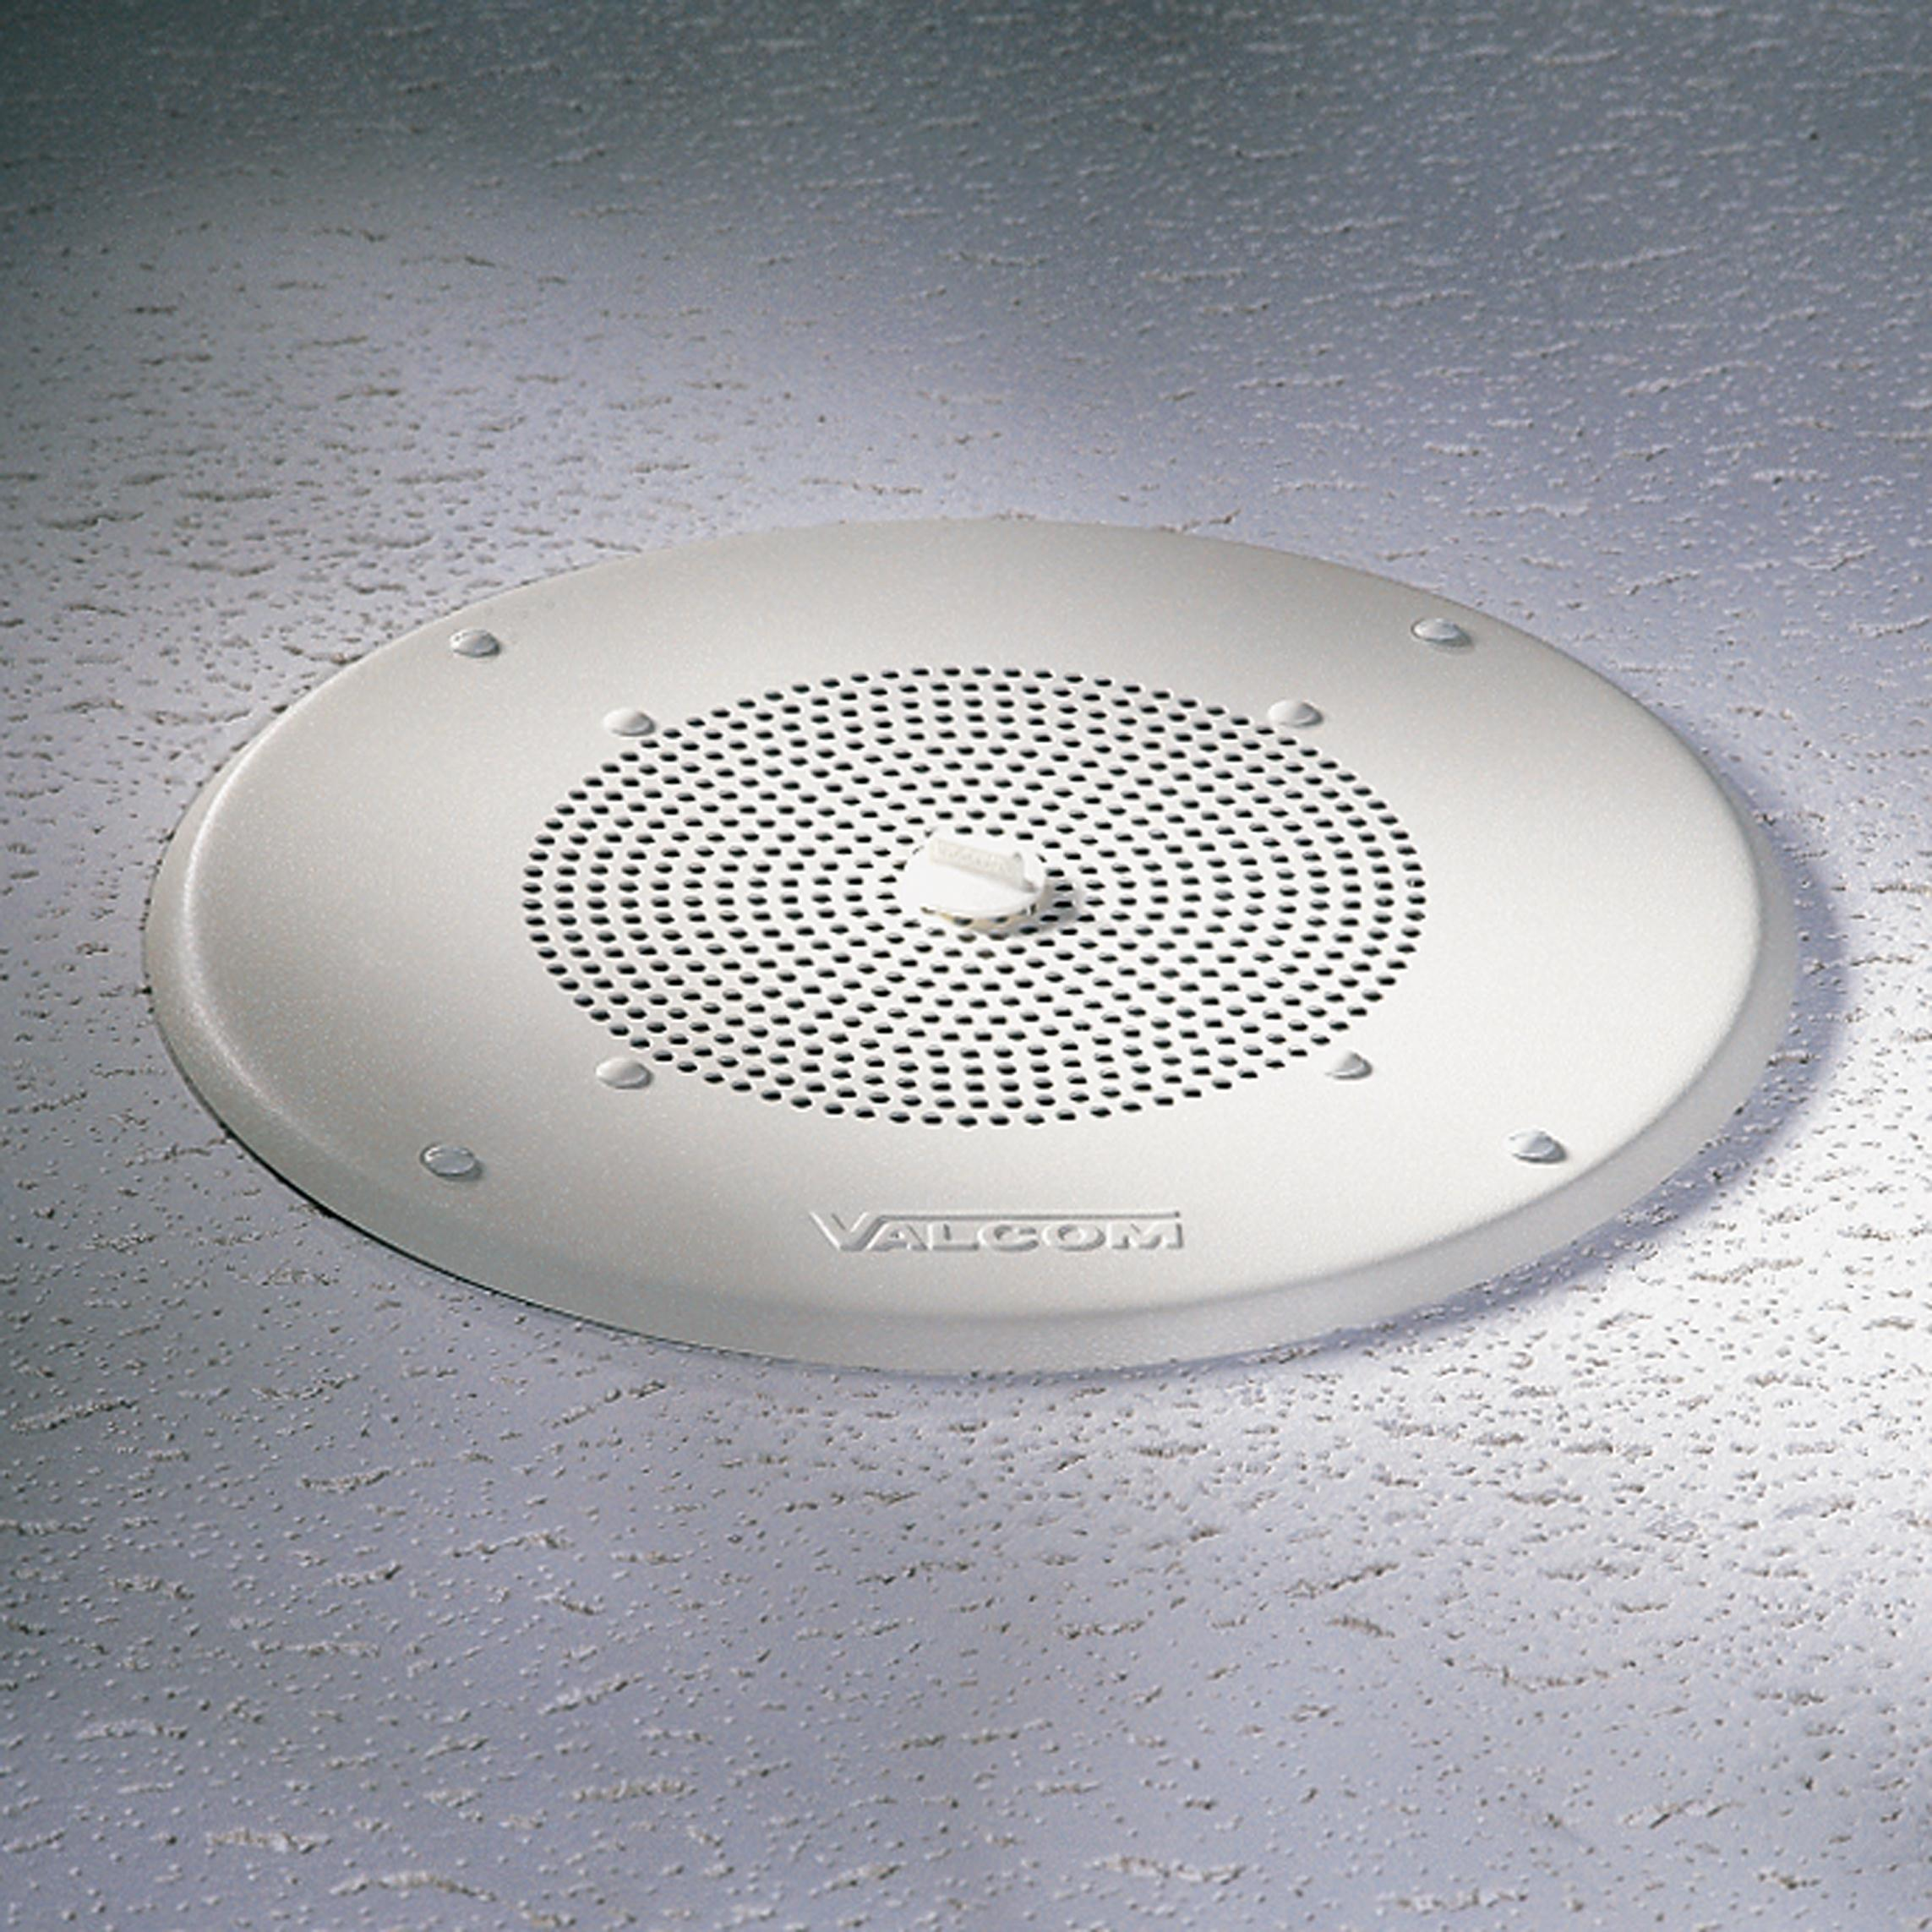 VALCOM V-1420 Signature Series Ceiling Speaker